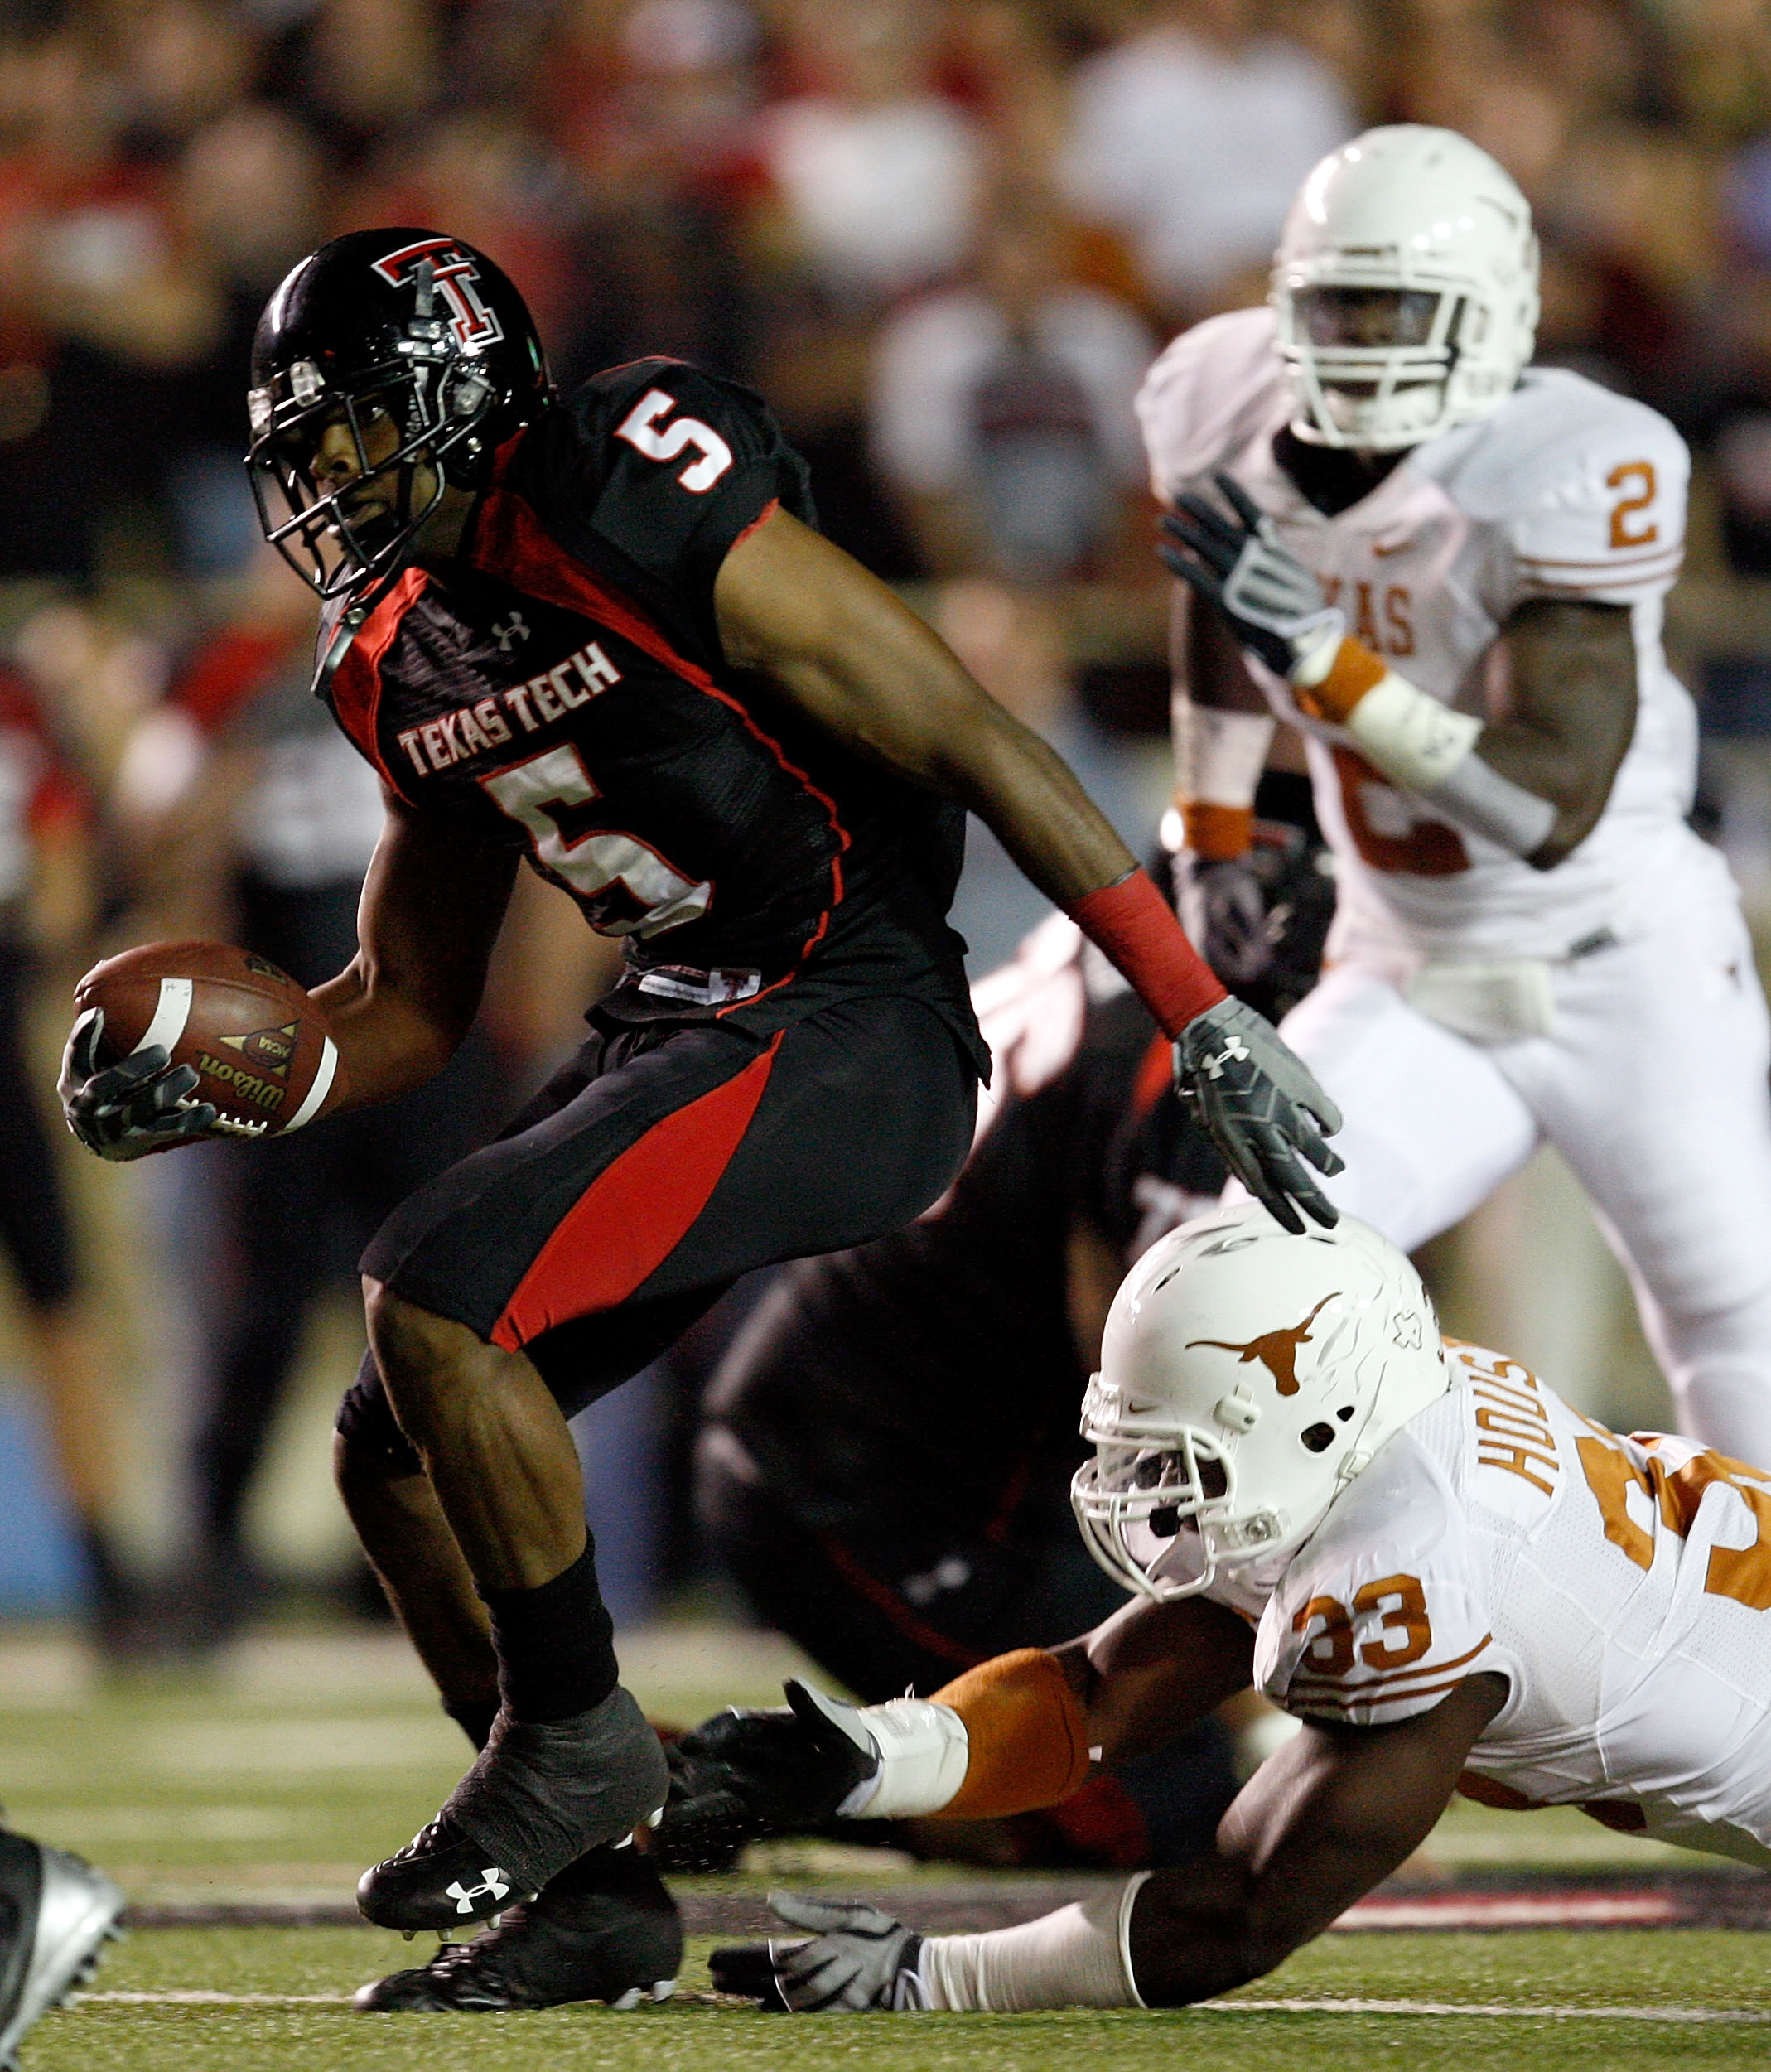 LUBBOCK, TX - NOVEMBER 01:  Michael Crabtree #5 of the Texas Tech Red Raiders carries the ball after making a reception during the first half of the game against the Texas Longhorns on November 1, 2008 at Jones Stadium in Lubbock, Texas.  (Photo by Jamie